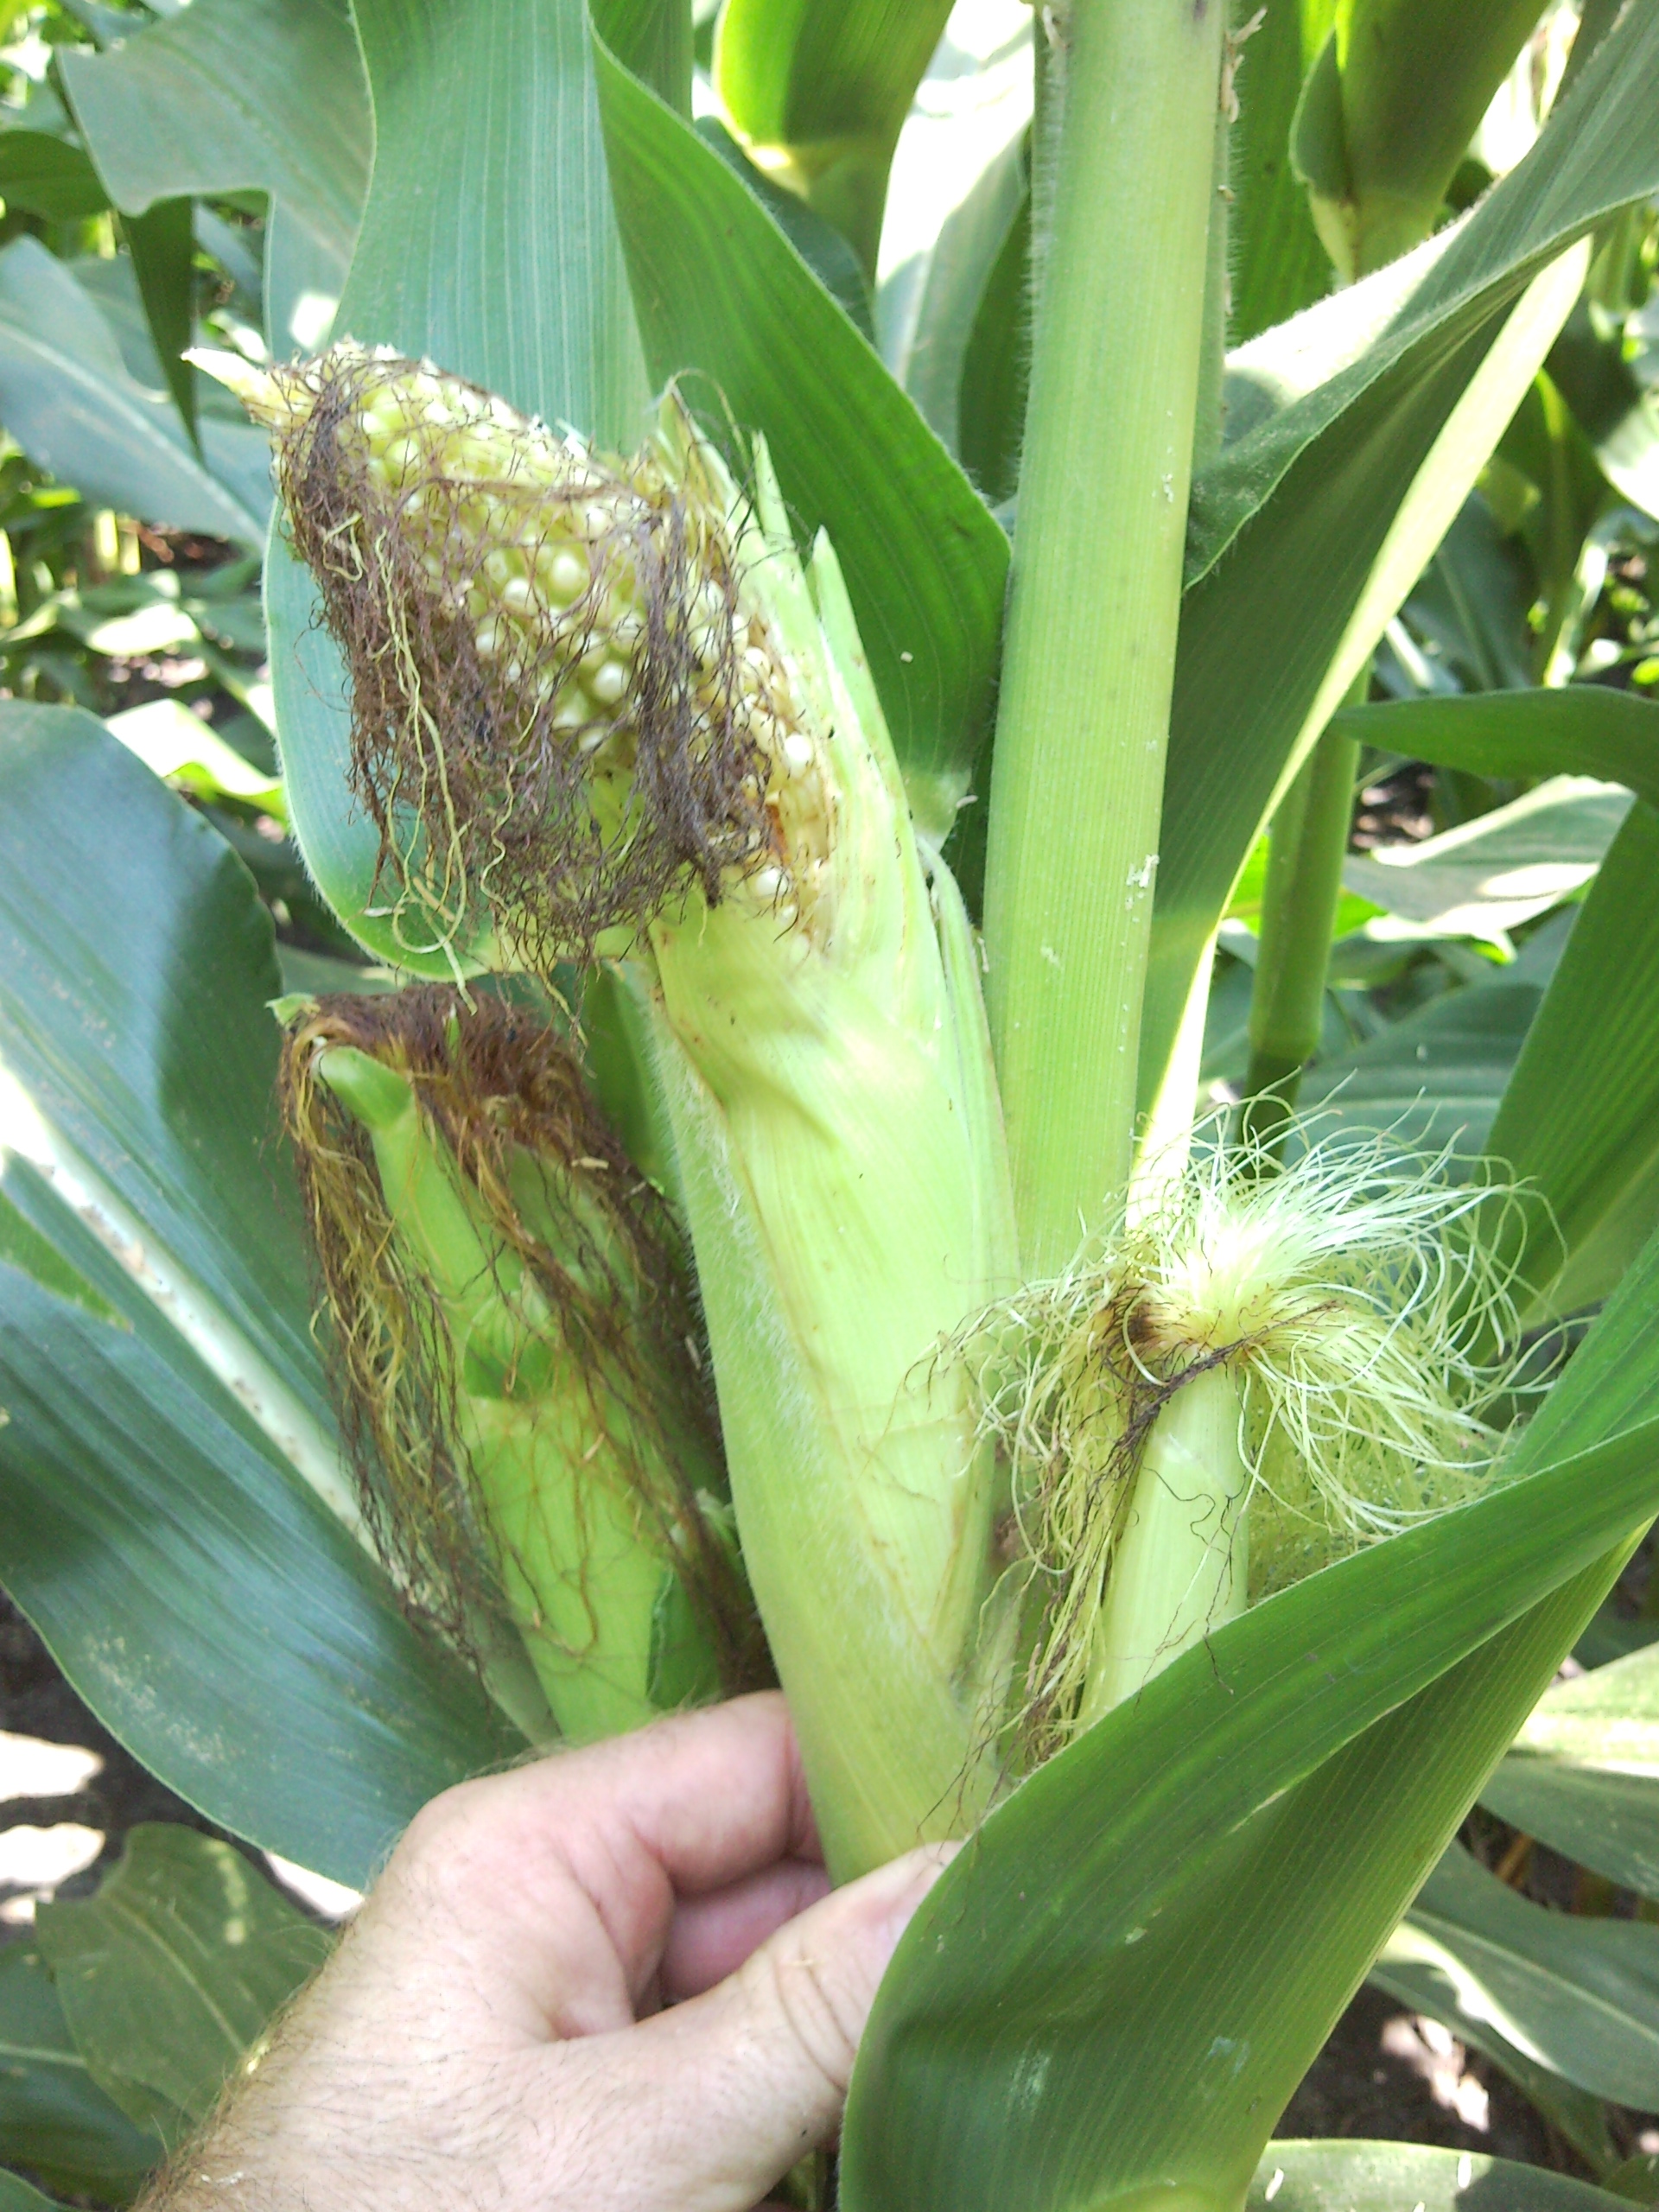 Injury caused by stink bugs feeding on stalks before the ear emerged (prior to tasseling)